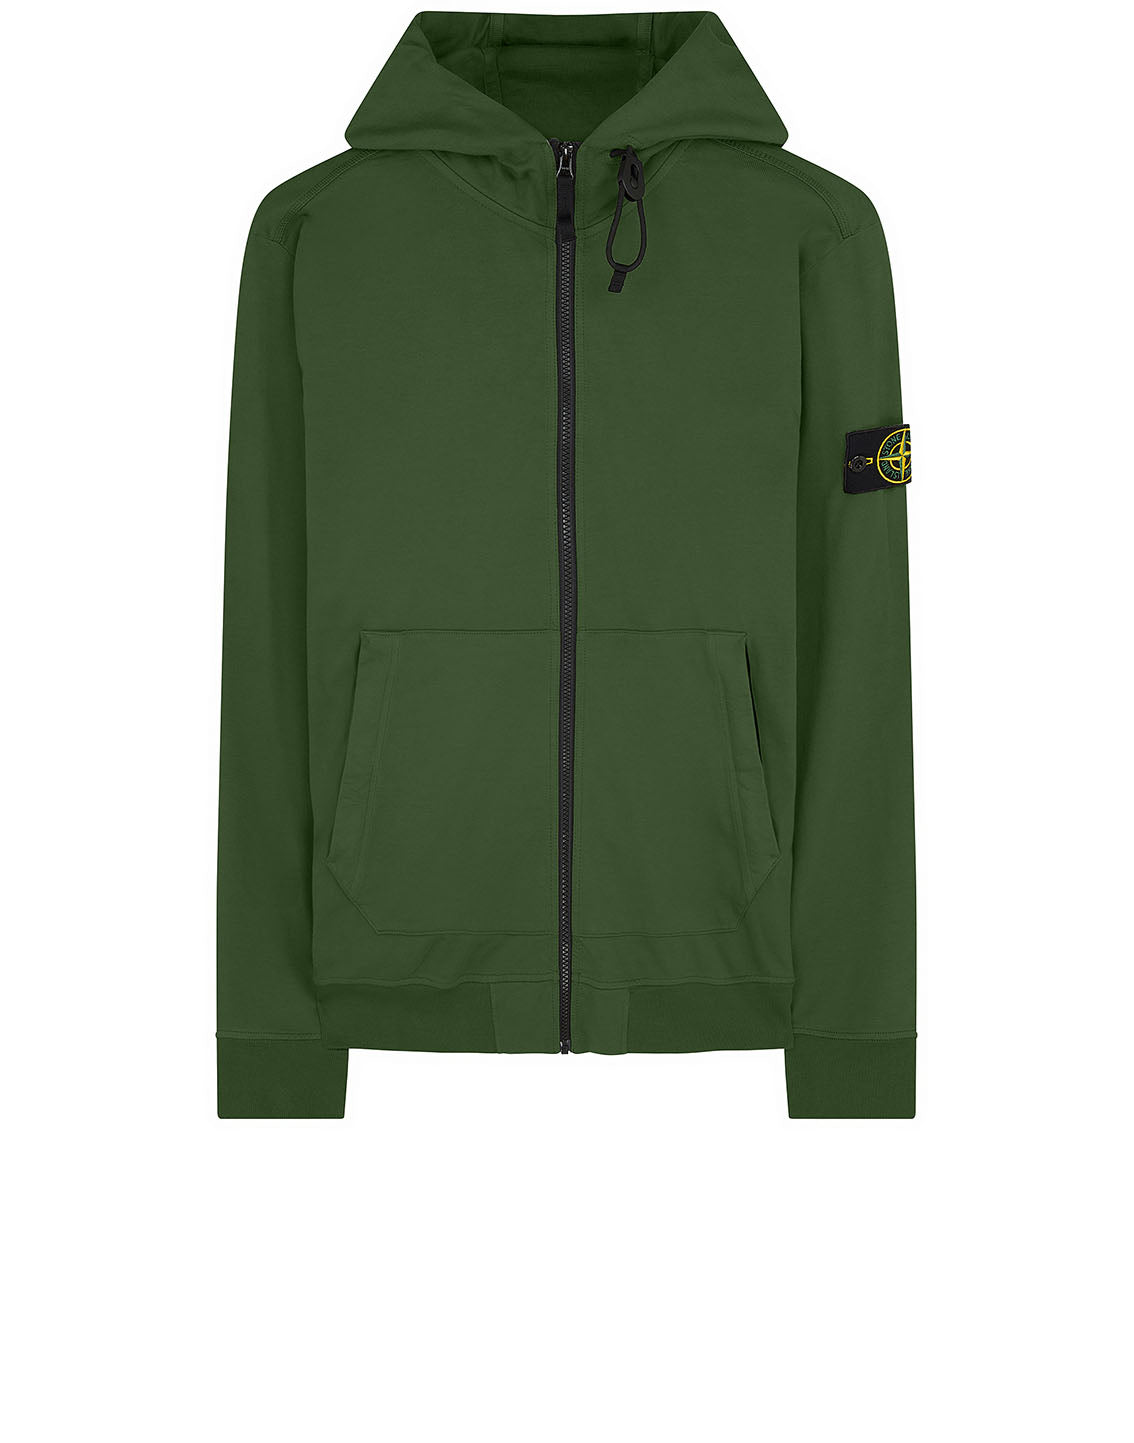 61150 Hooded full zip sweatshirt in Dark Forest